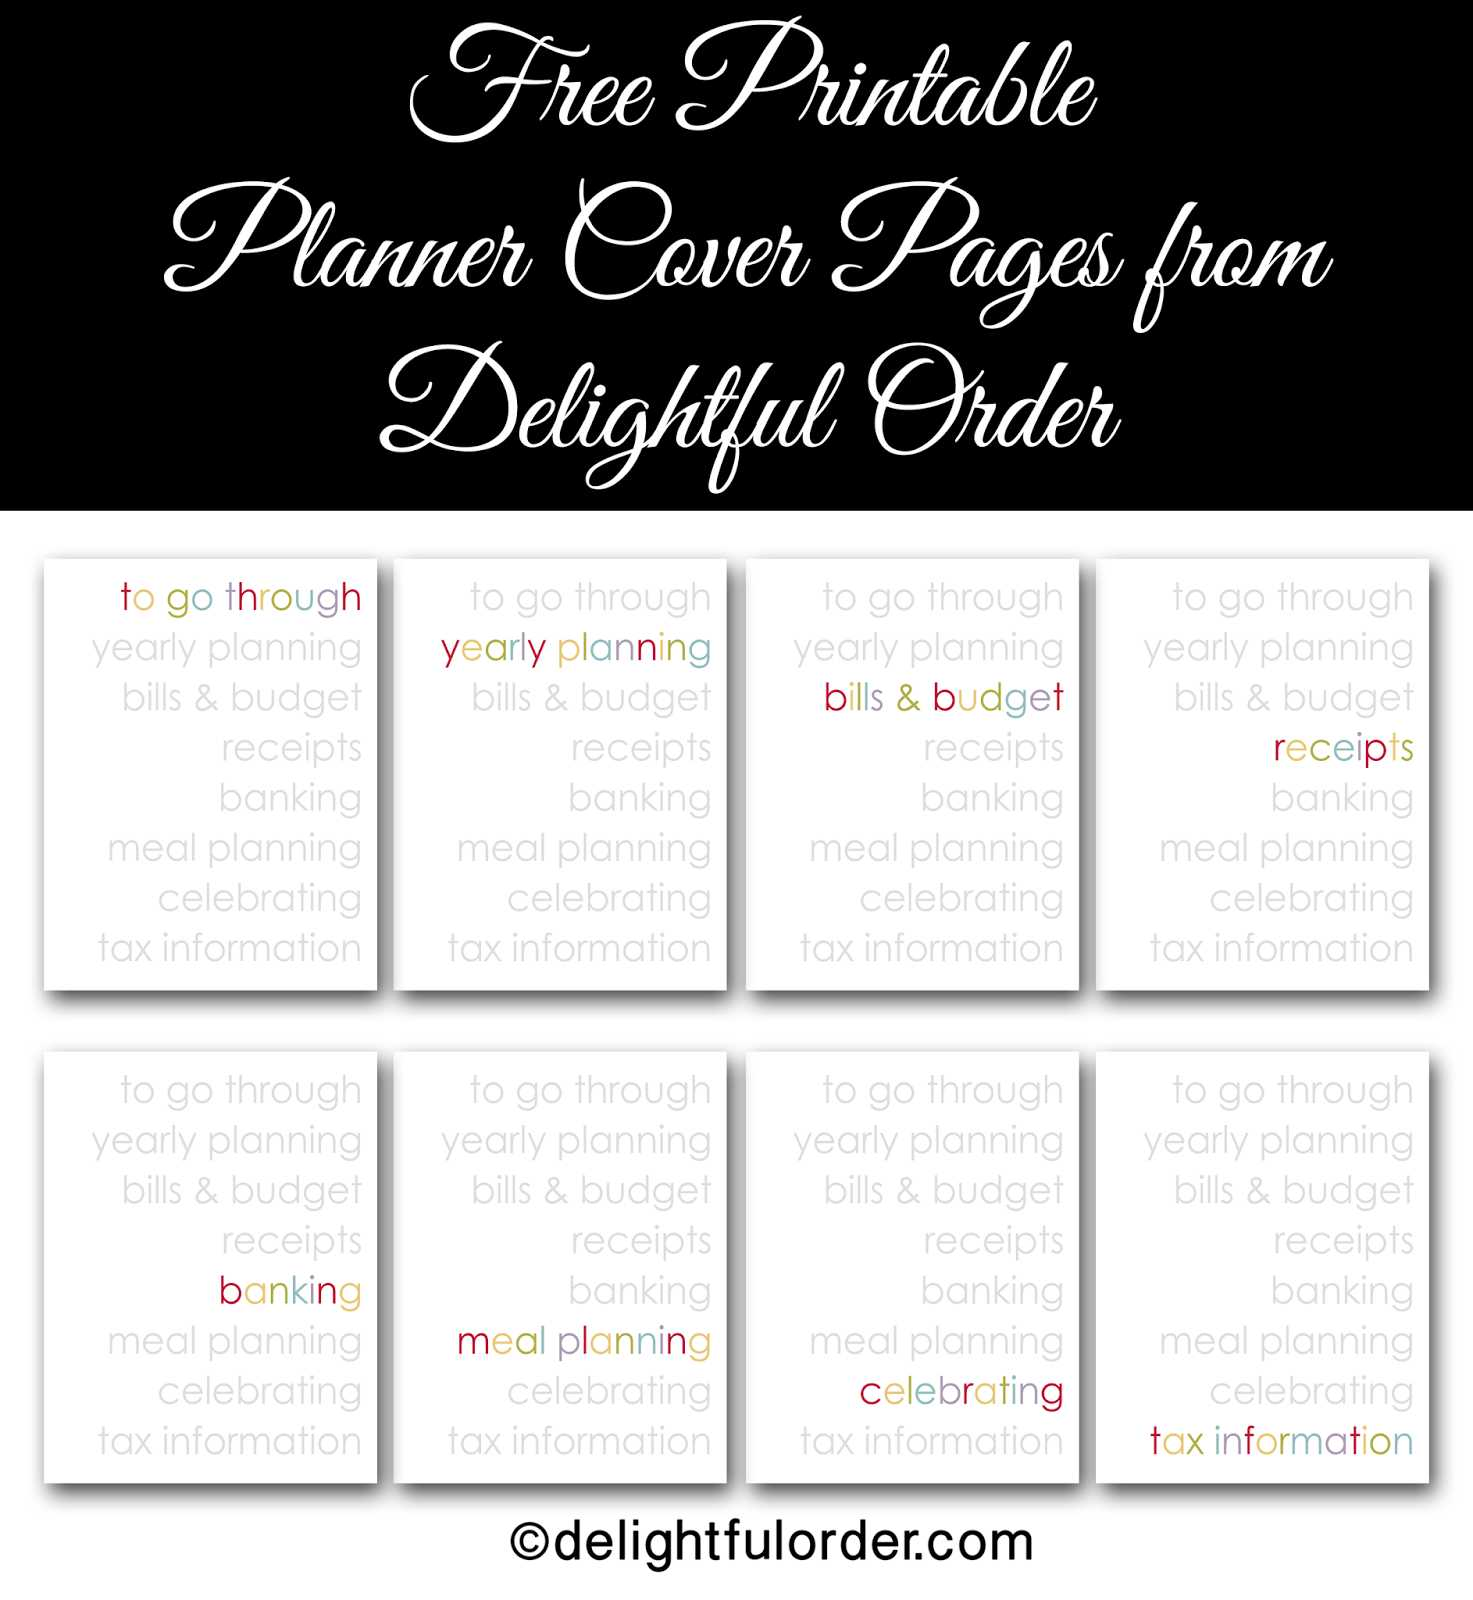 Free Printable Budget Binder Worksheets Also Free organizer organized All In E Planner Printables From